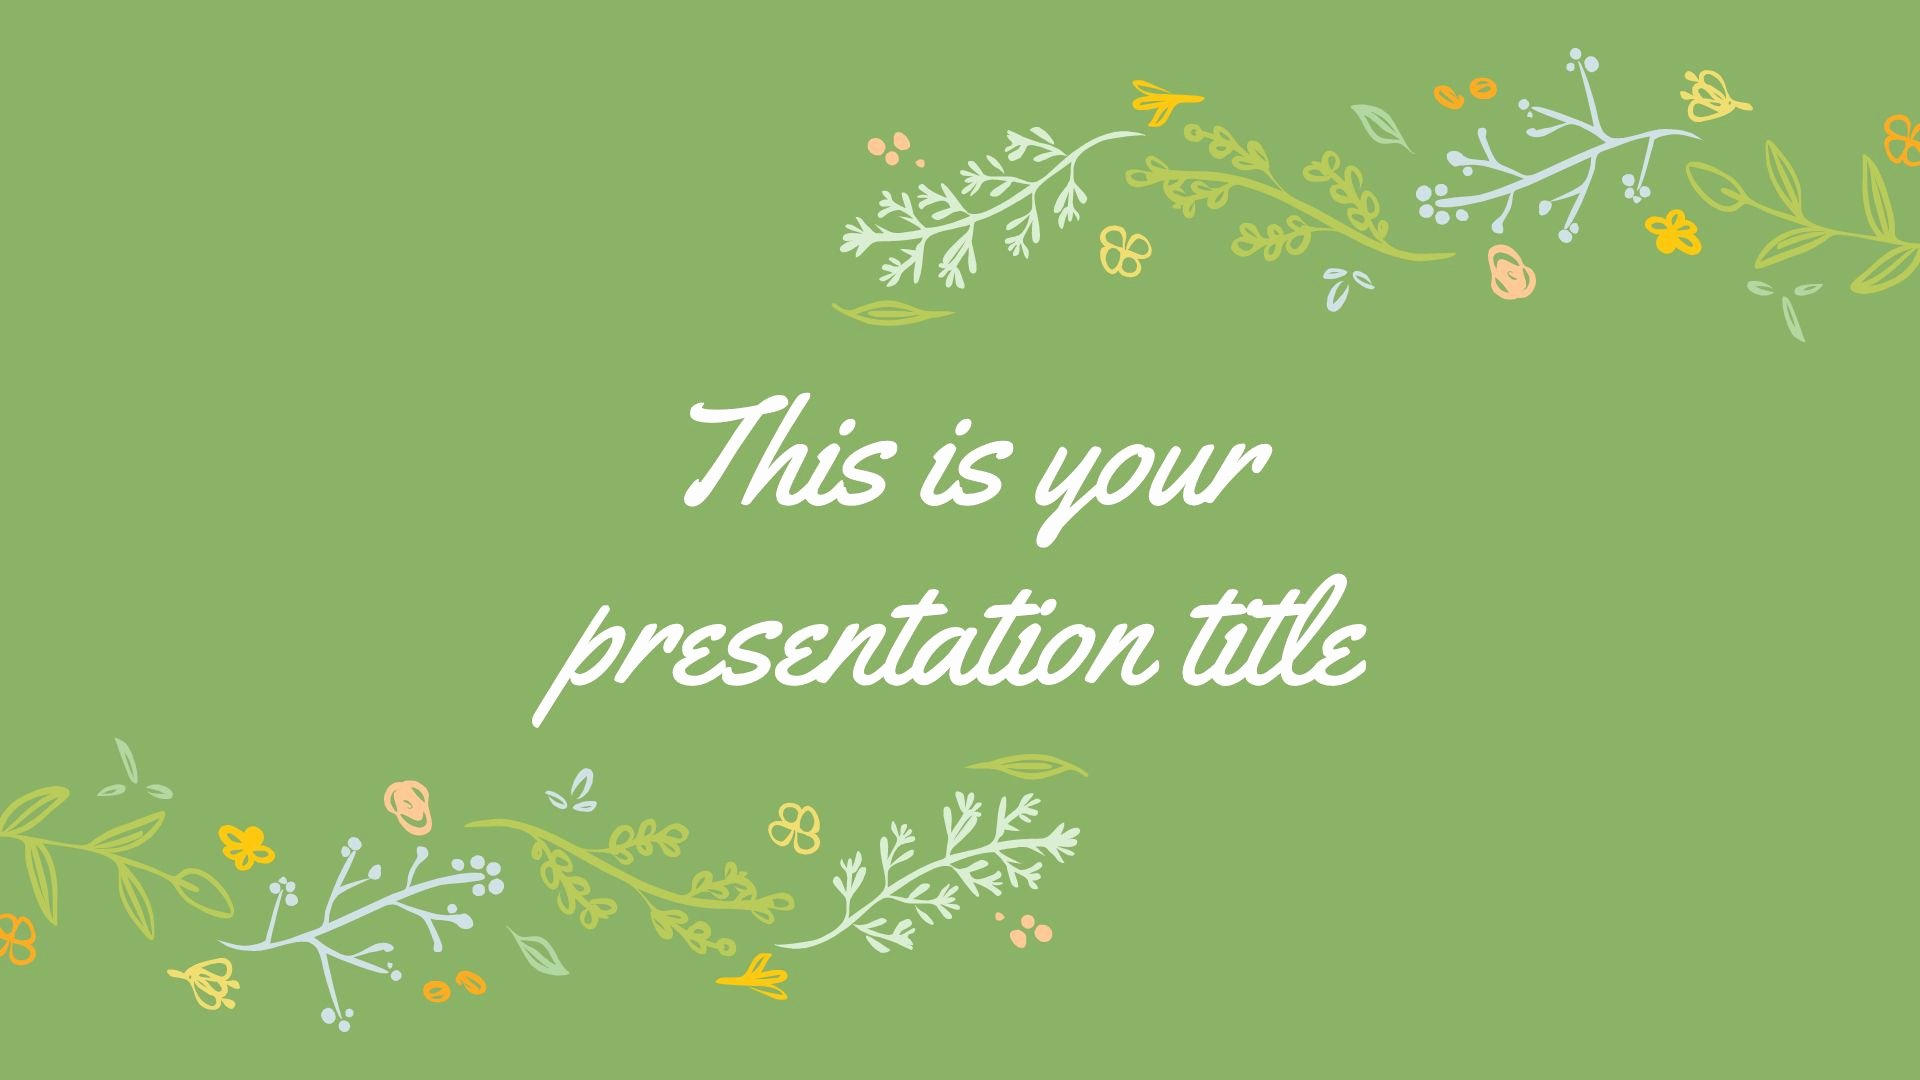 Powerpoint Background Image Free Download Awesome Free Green Powerpoint Template or Google Slides theme with Floral Illustrations